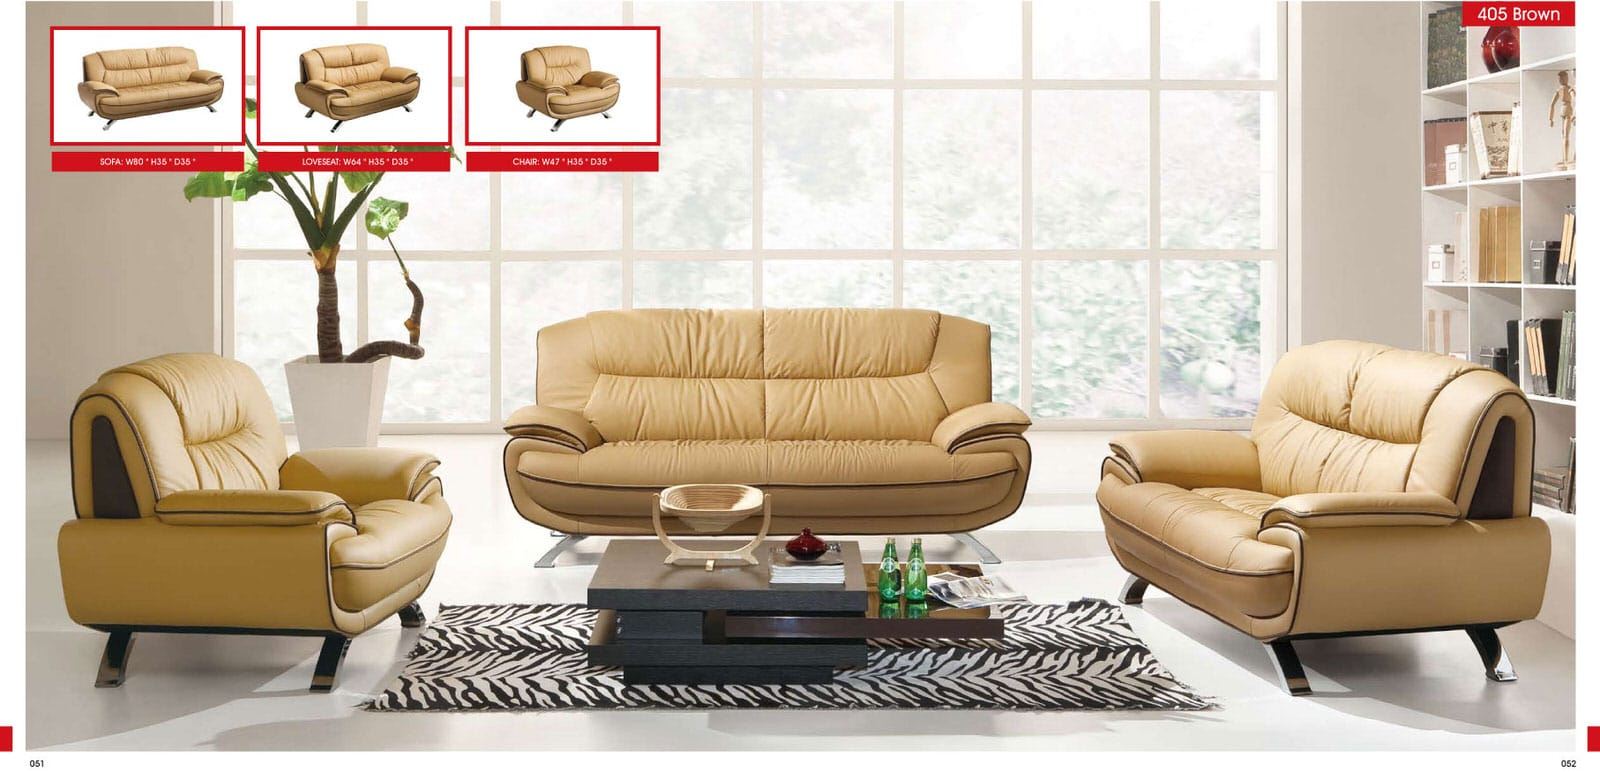 405 brown leather sofa set by esf Sofa for living room